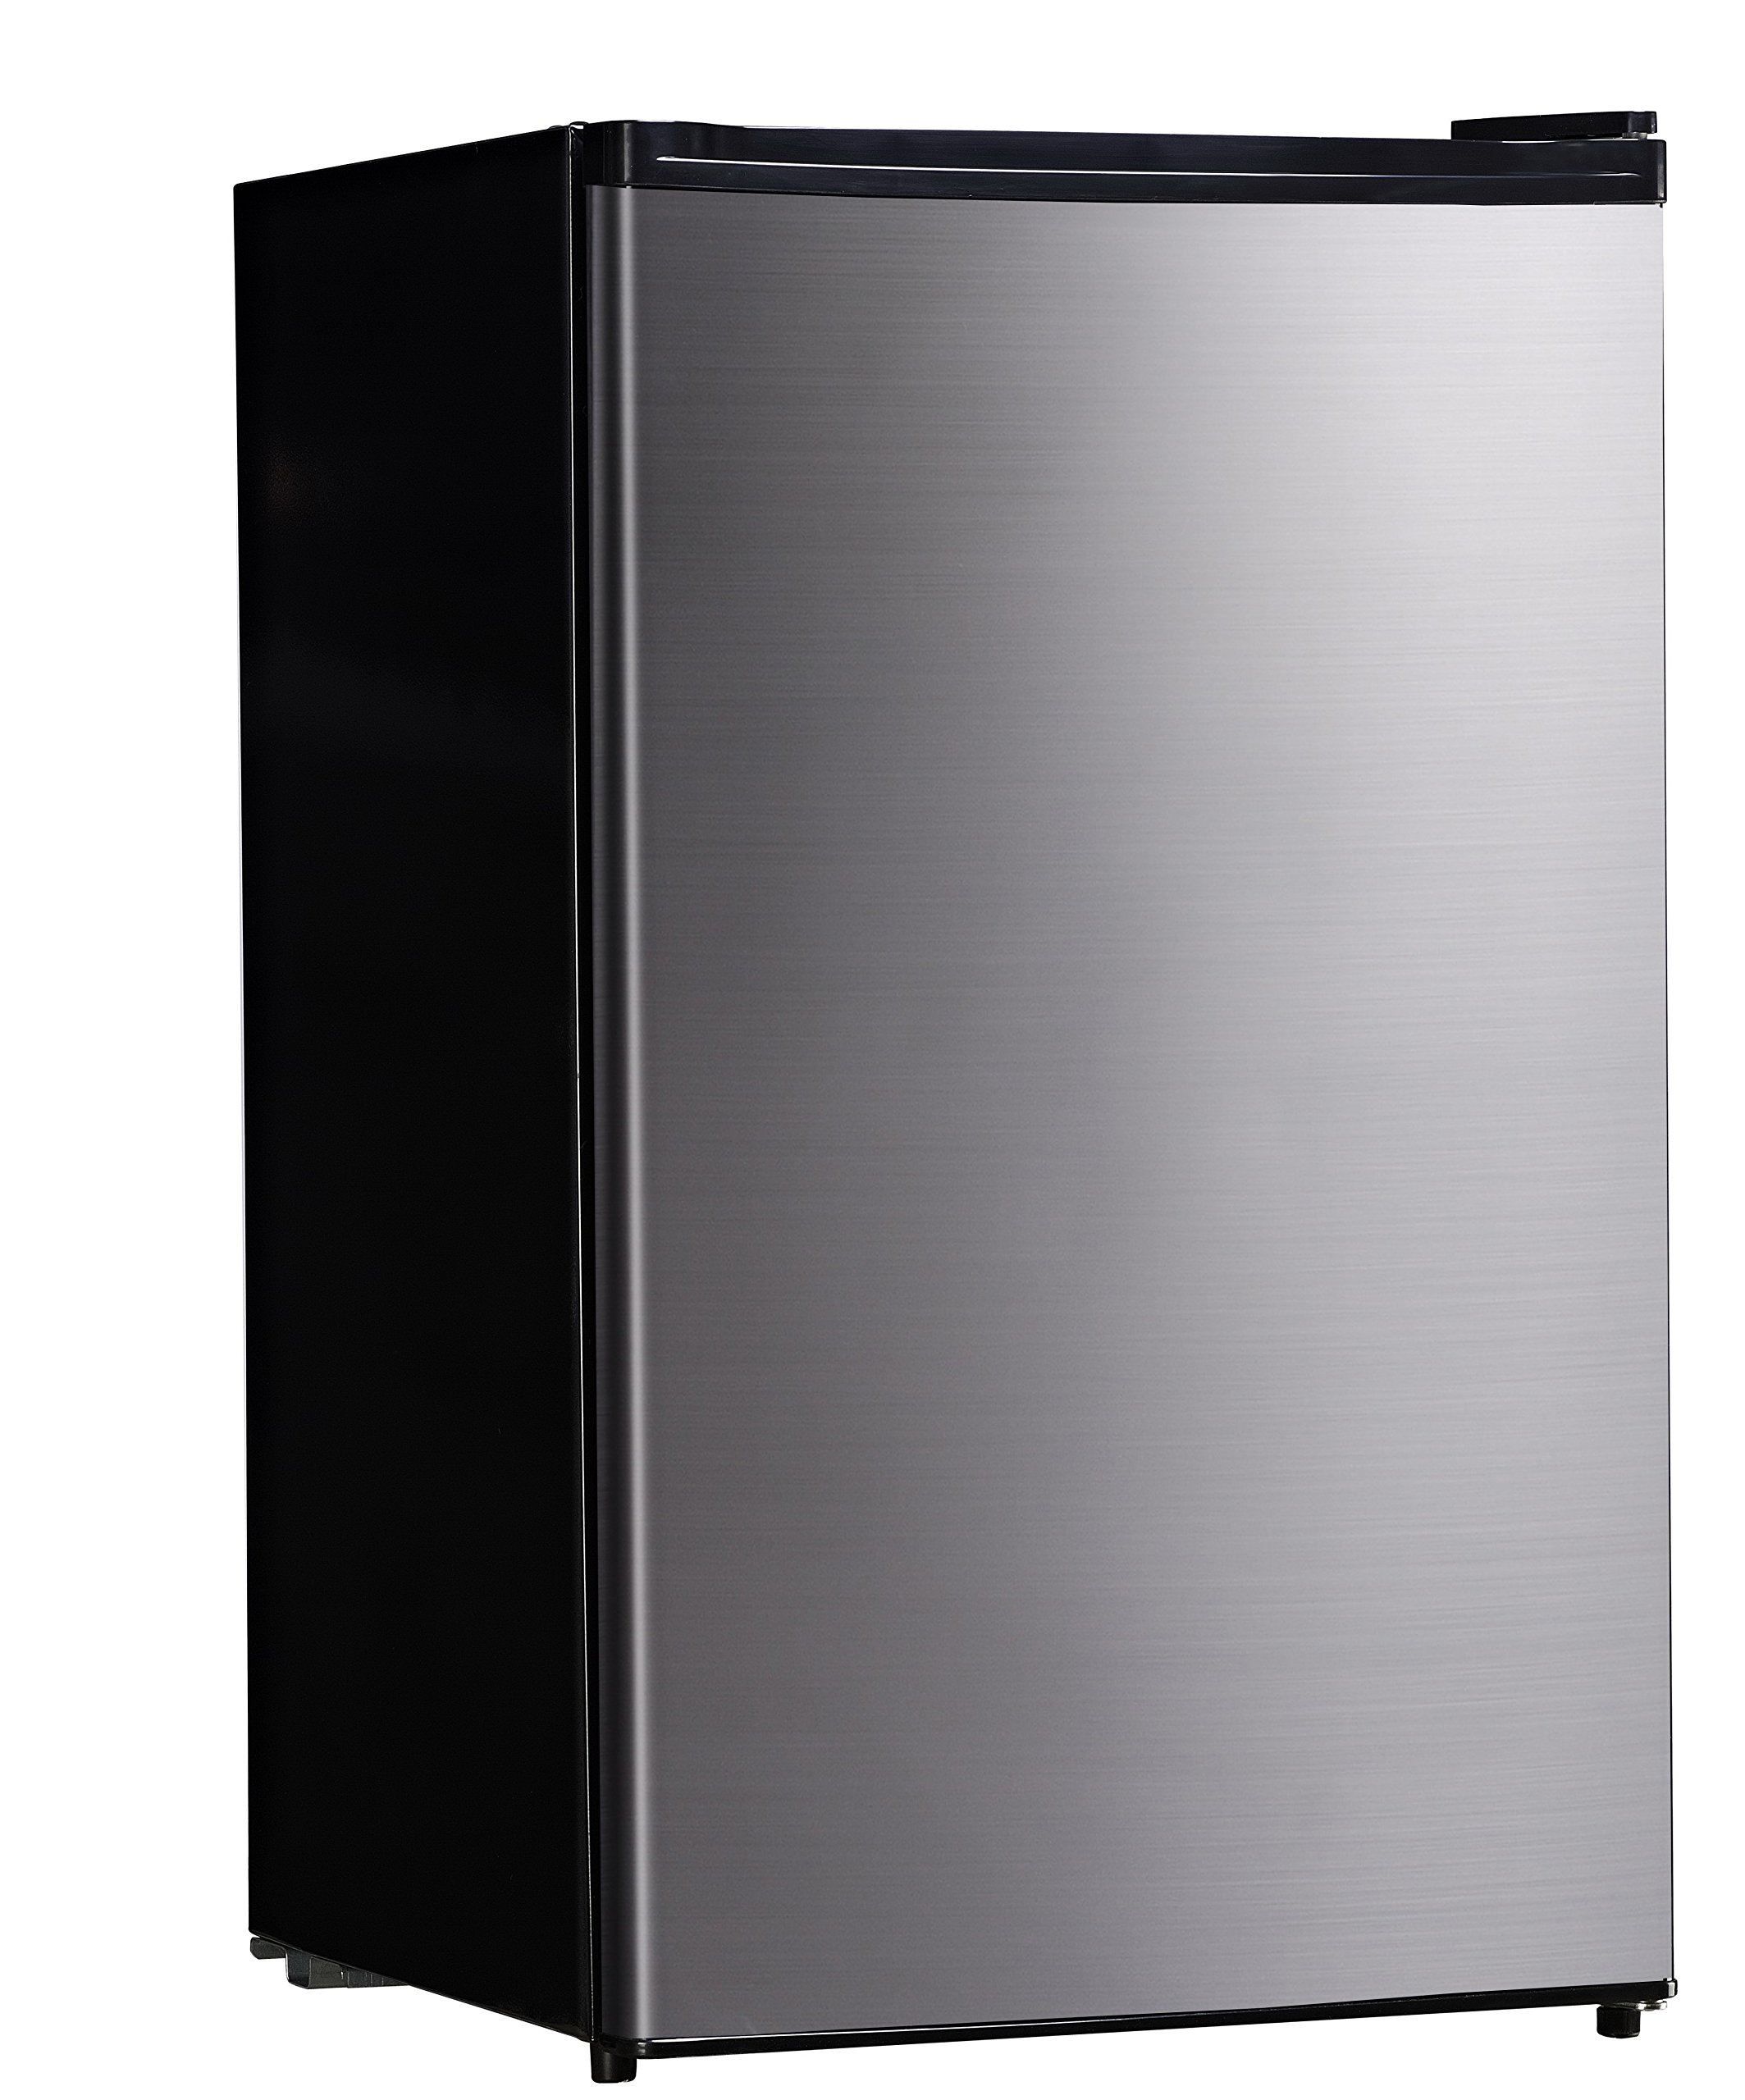 Midea WHS-160RSS1 Compact Single Reversible Door Refrigerator and Freezer, 4.4 Cubic Feet, Stainless Steel by MIDEA